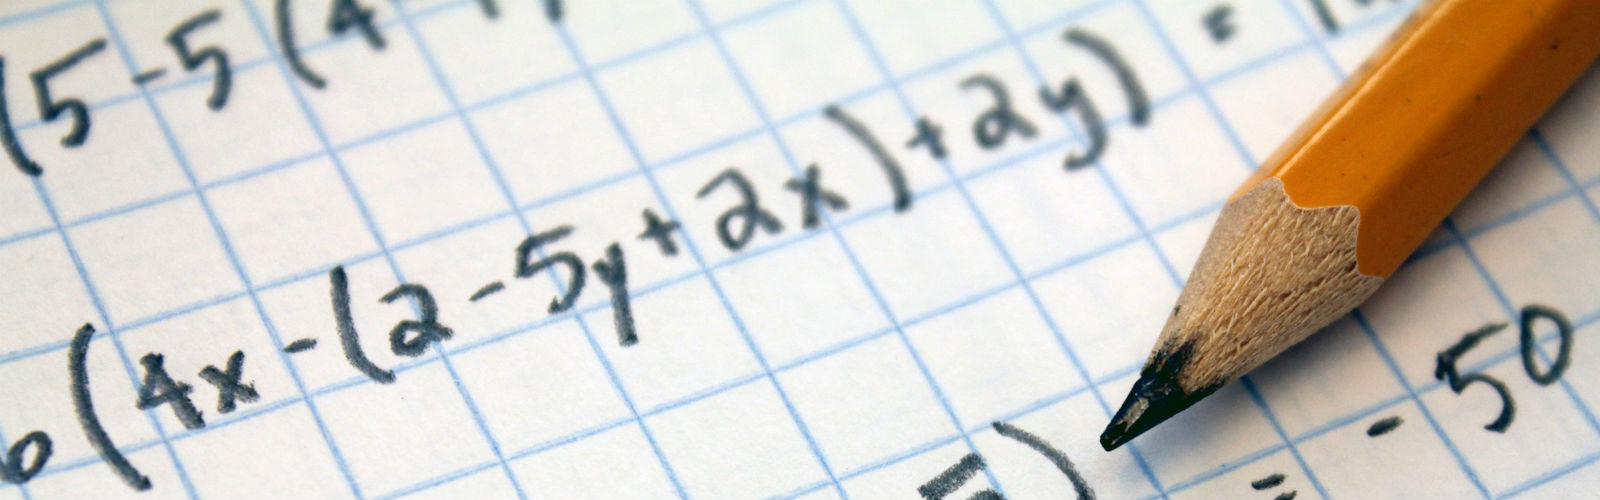 Image: equations and a pencil